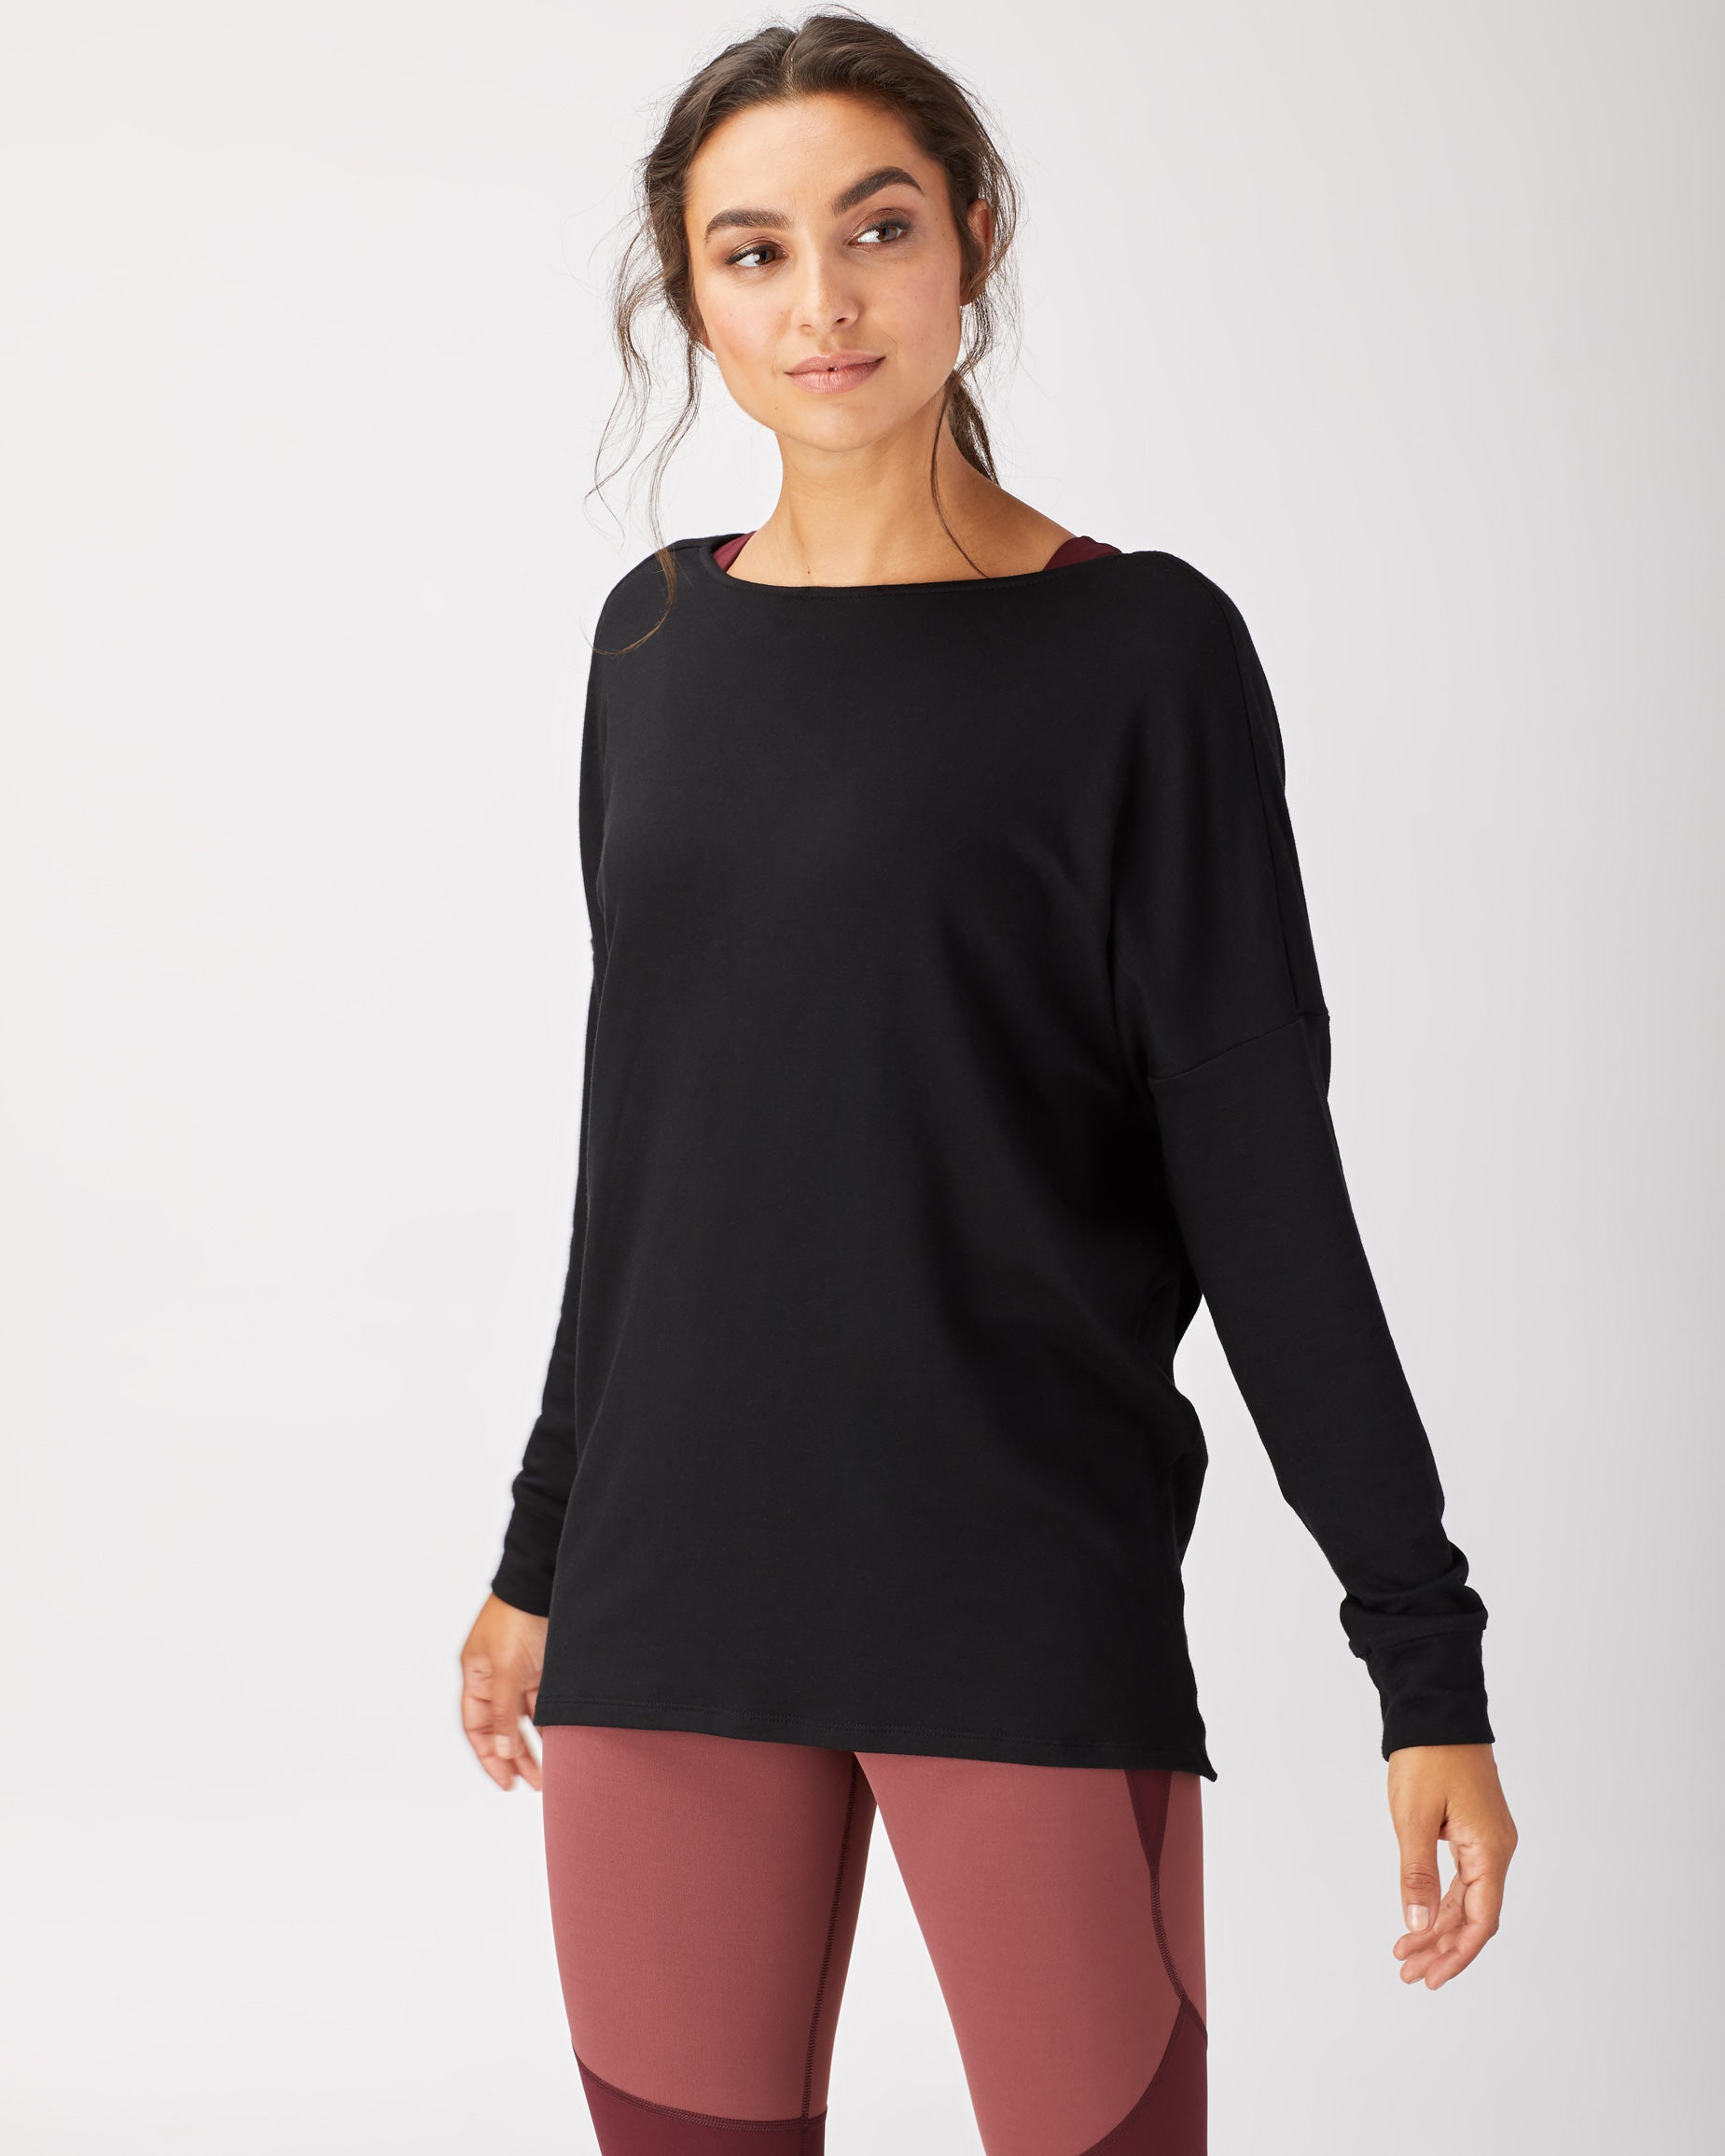 wander-sweatshirt-black